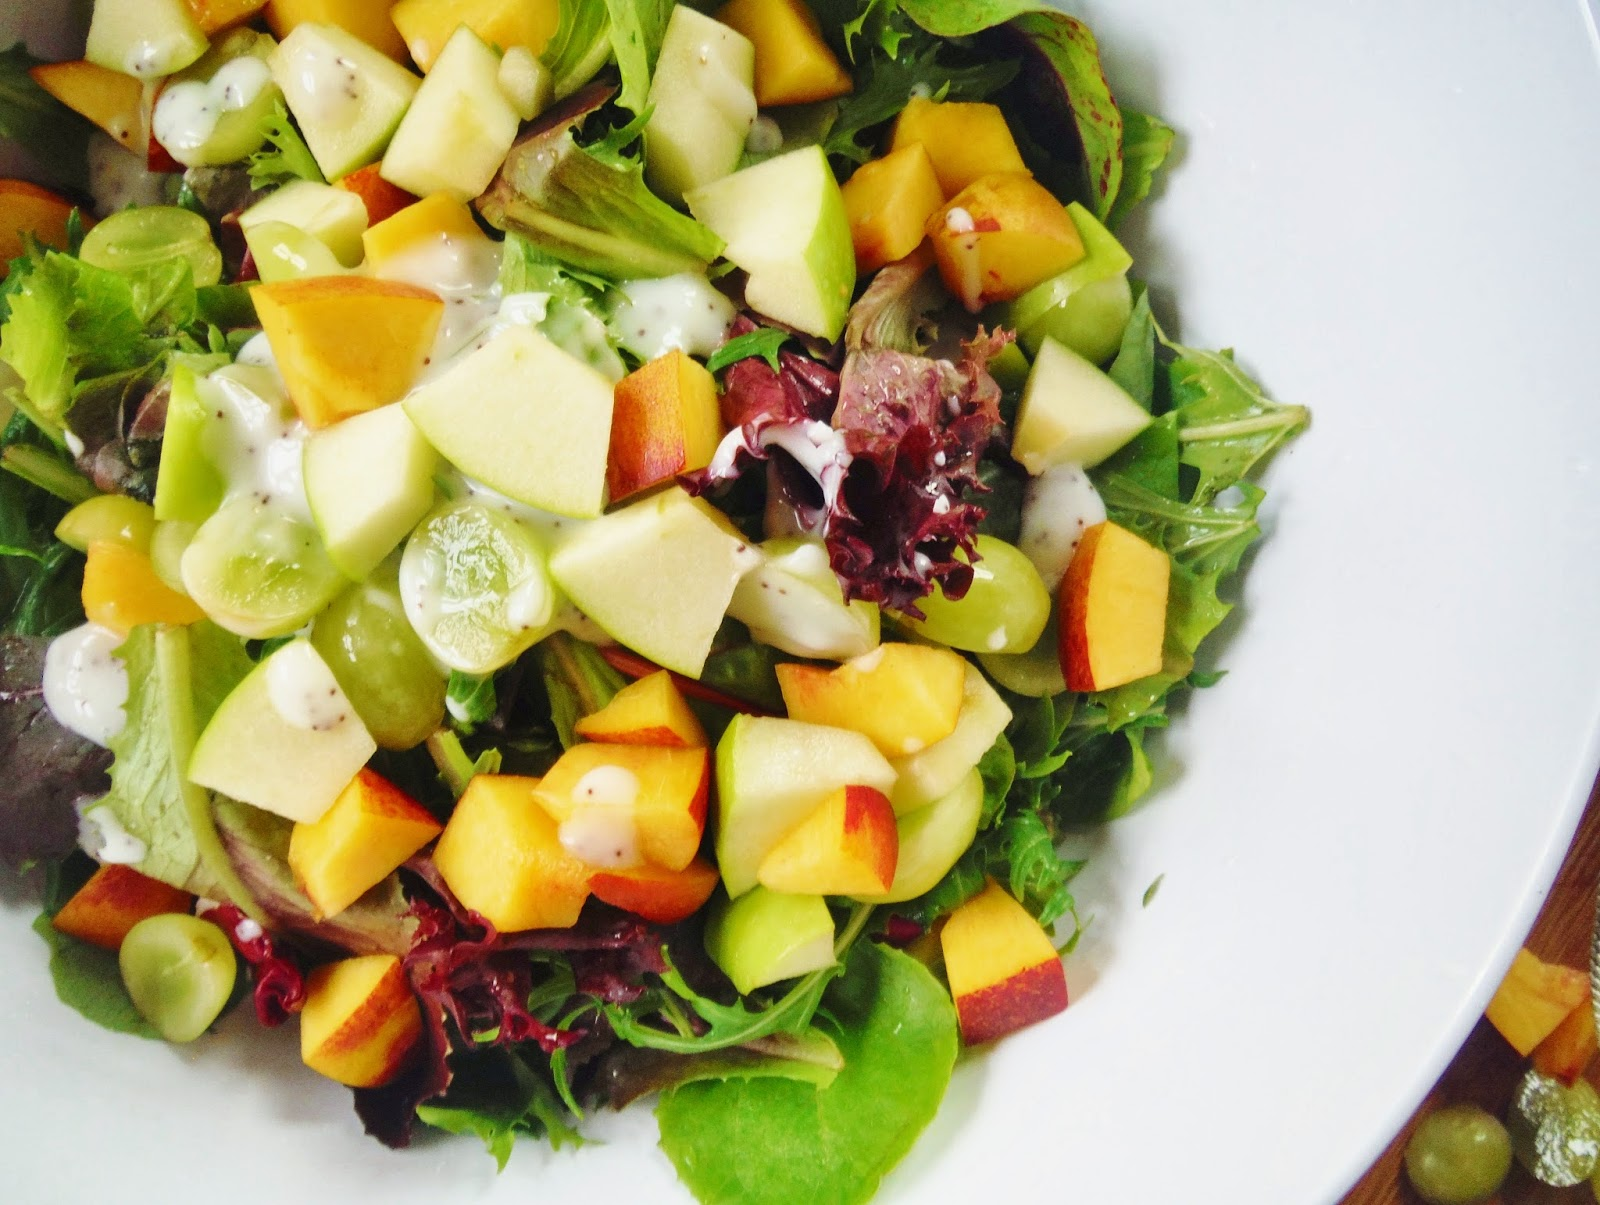 Spring Greens and Mixed Fruit Salad with Poppy Seed Dressing